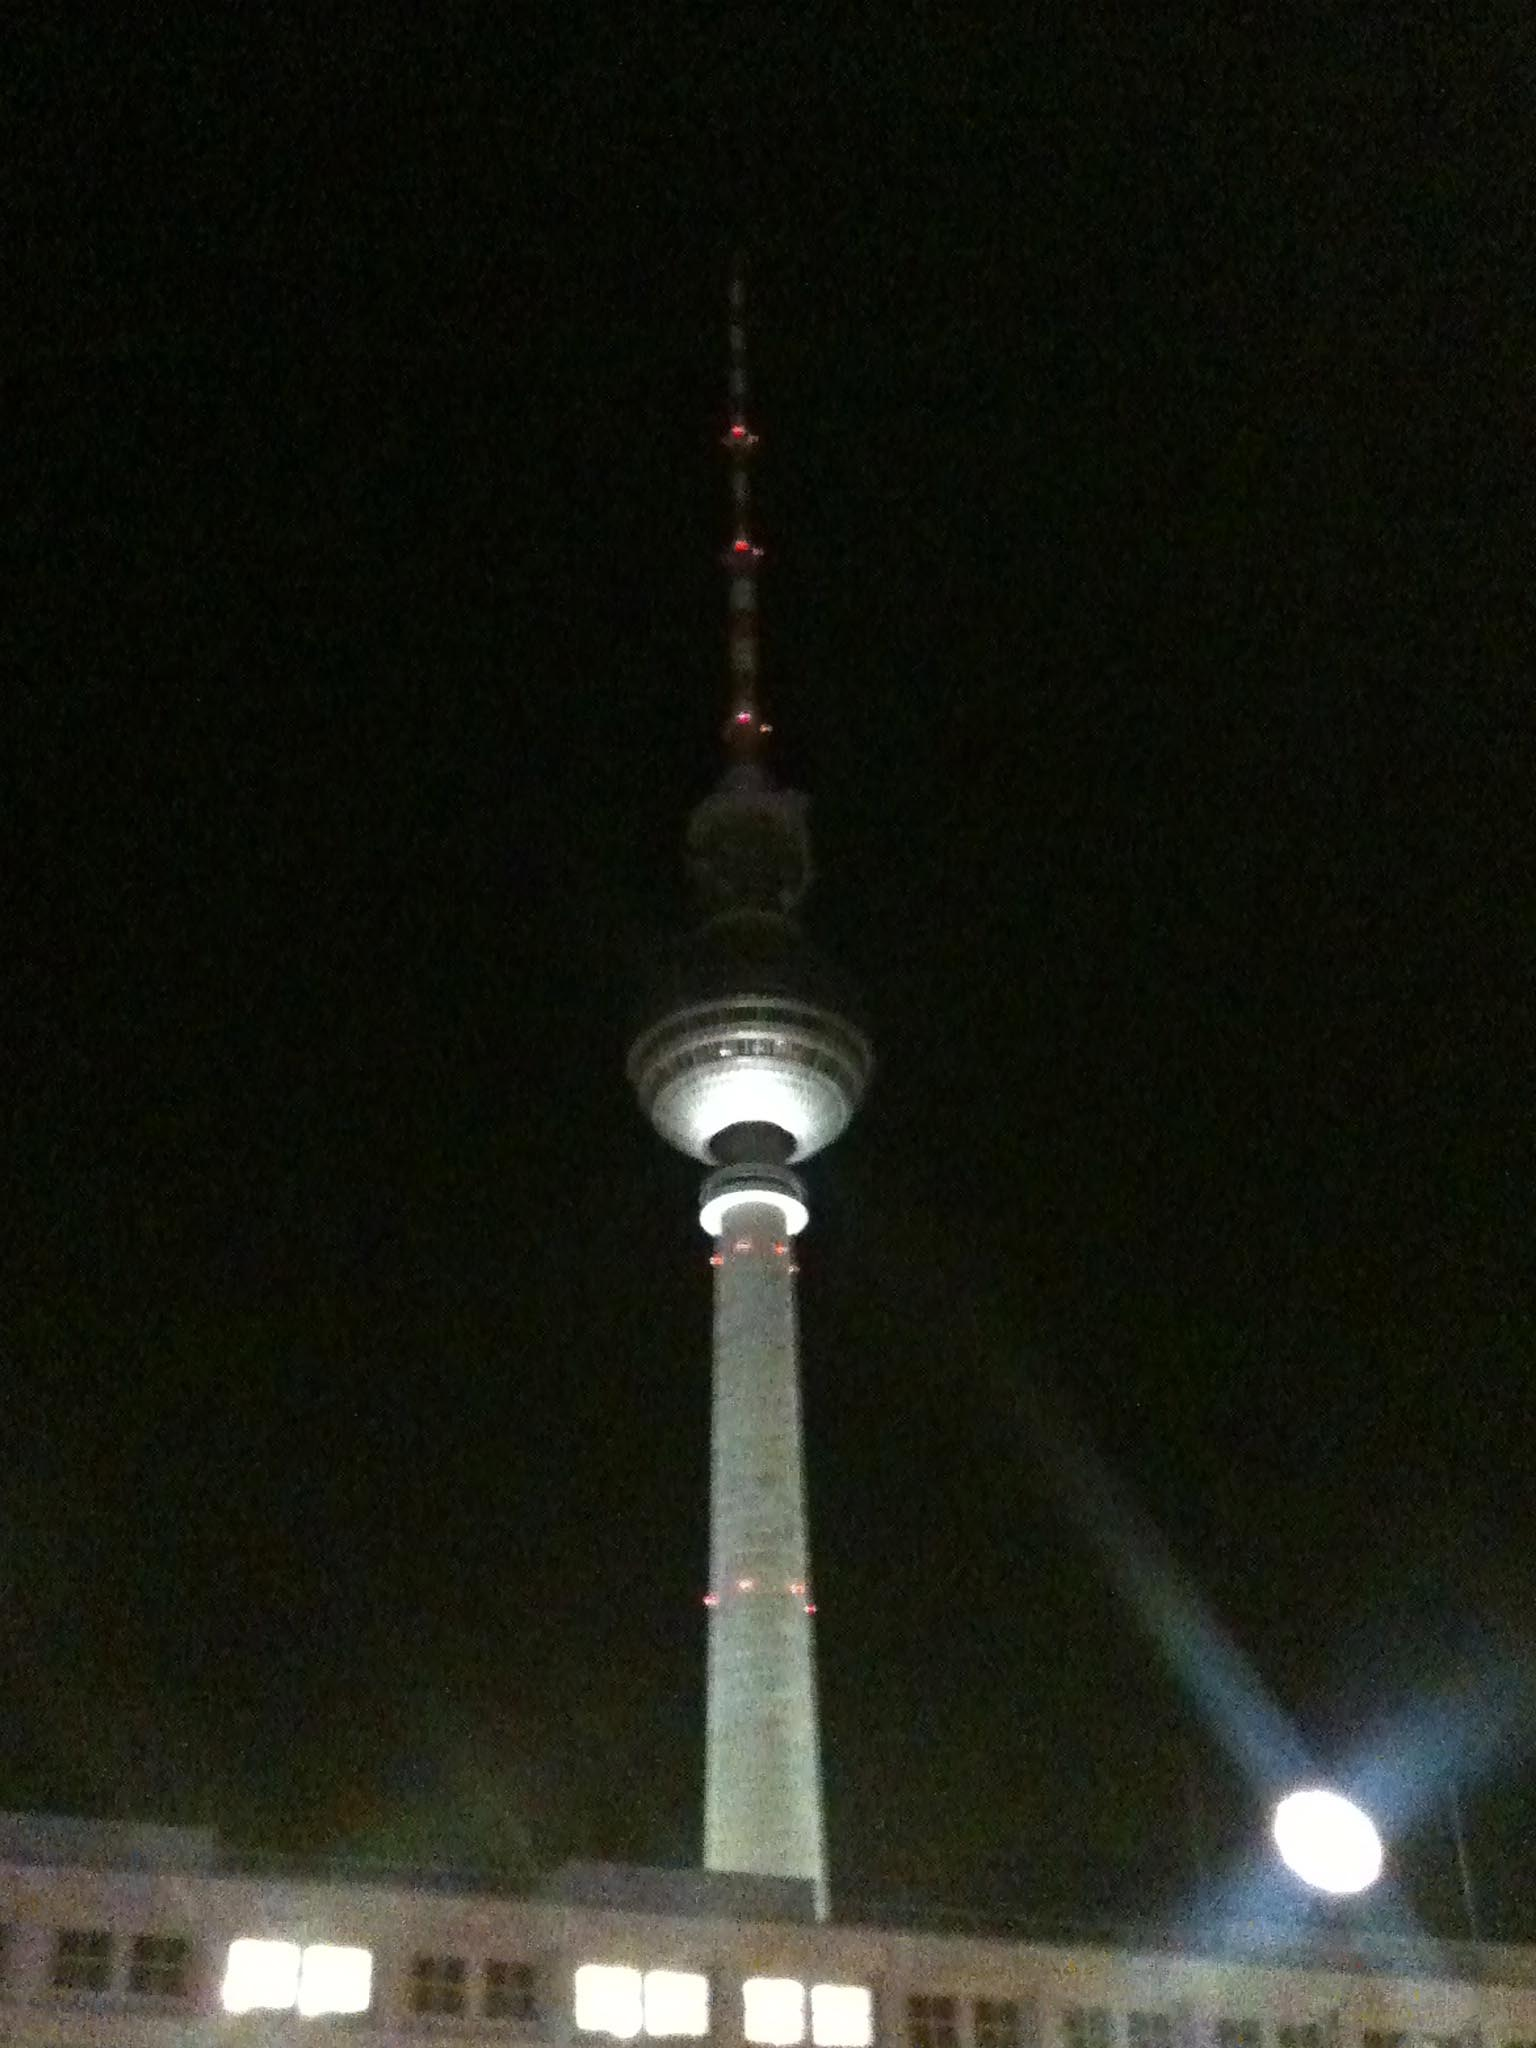 The Berlin Fernsehturm (TV Tower) at Night from Alexanderplatz